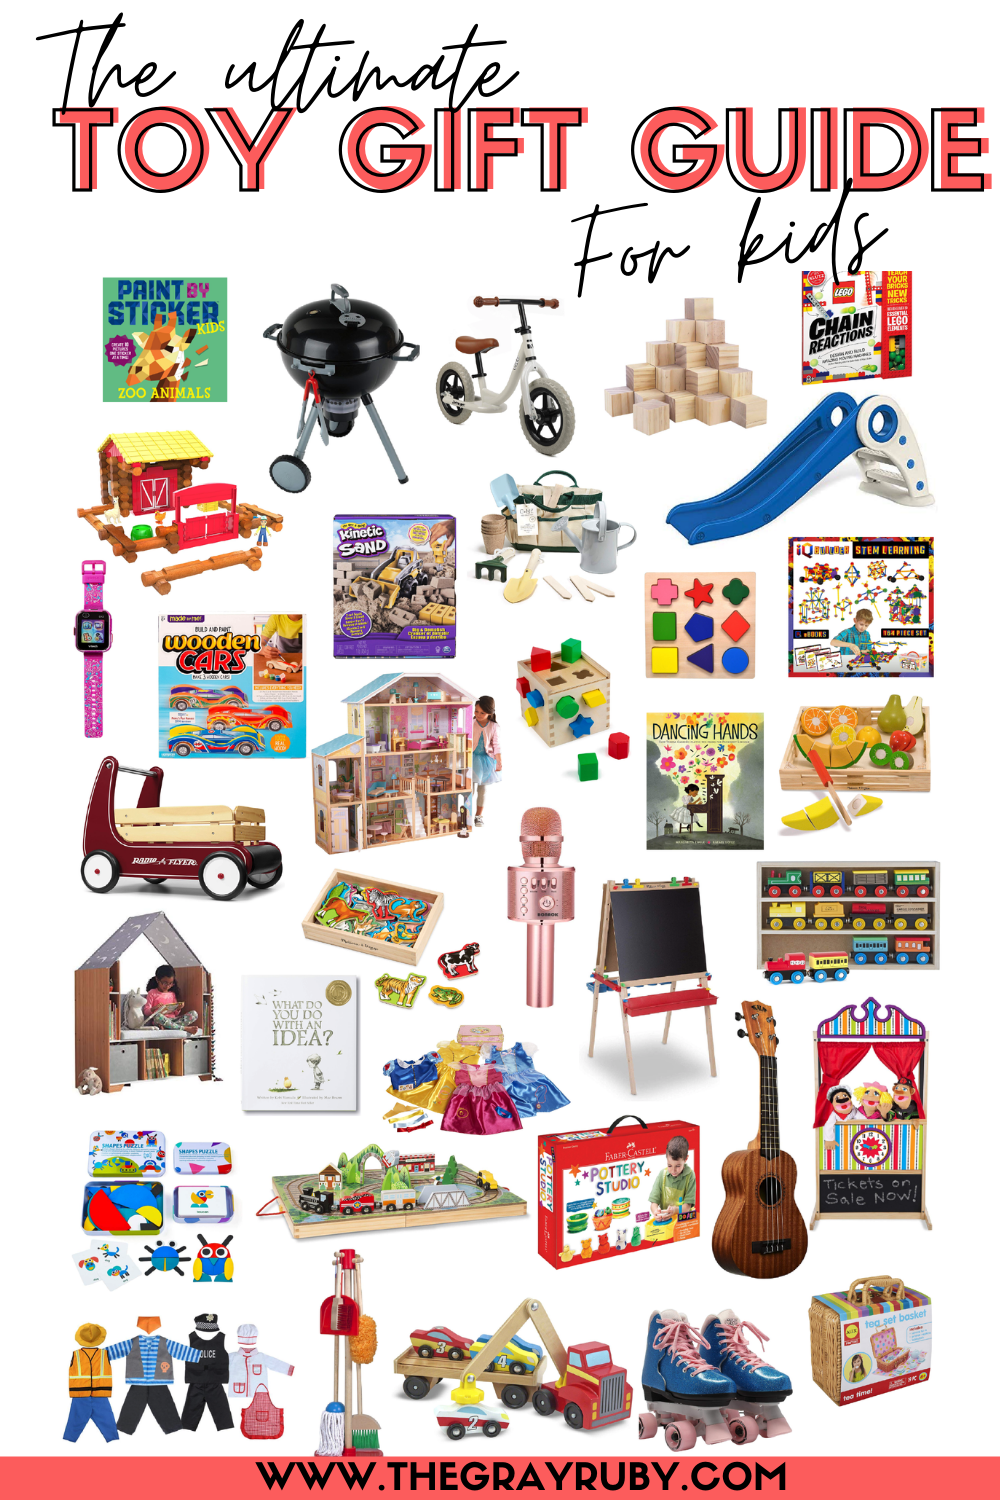 ULTIMATE TOY GIFT GUIDE